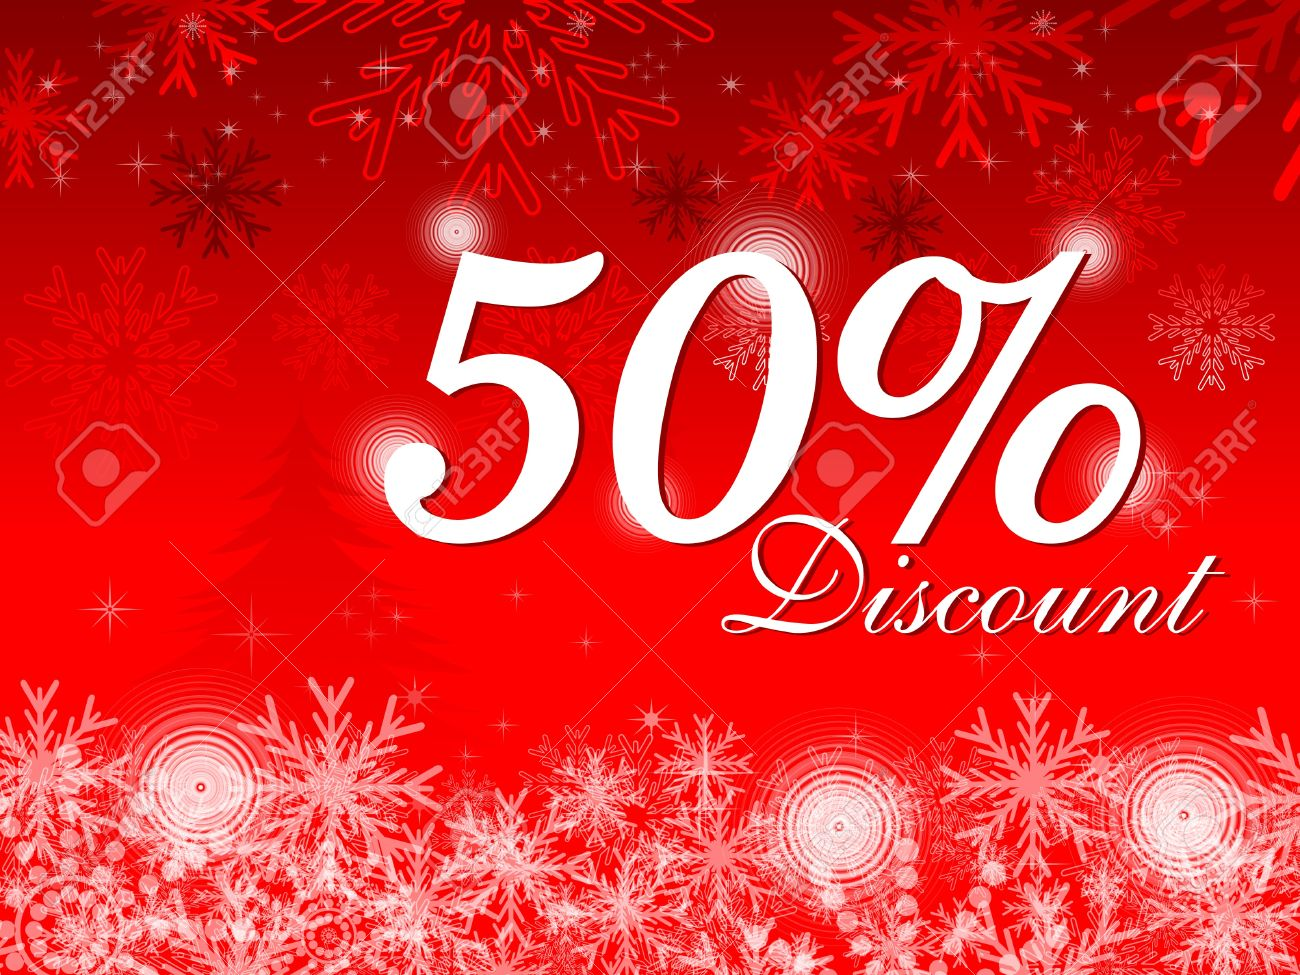 Abstract Christmas Discount Card Vector Illustration Royalty Free ...